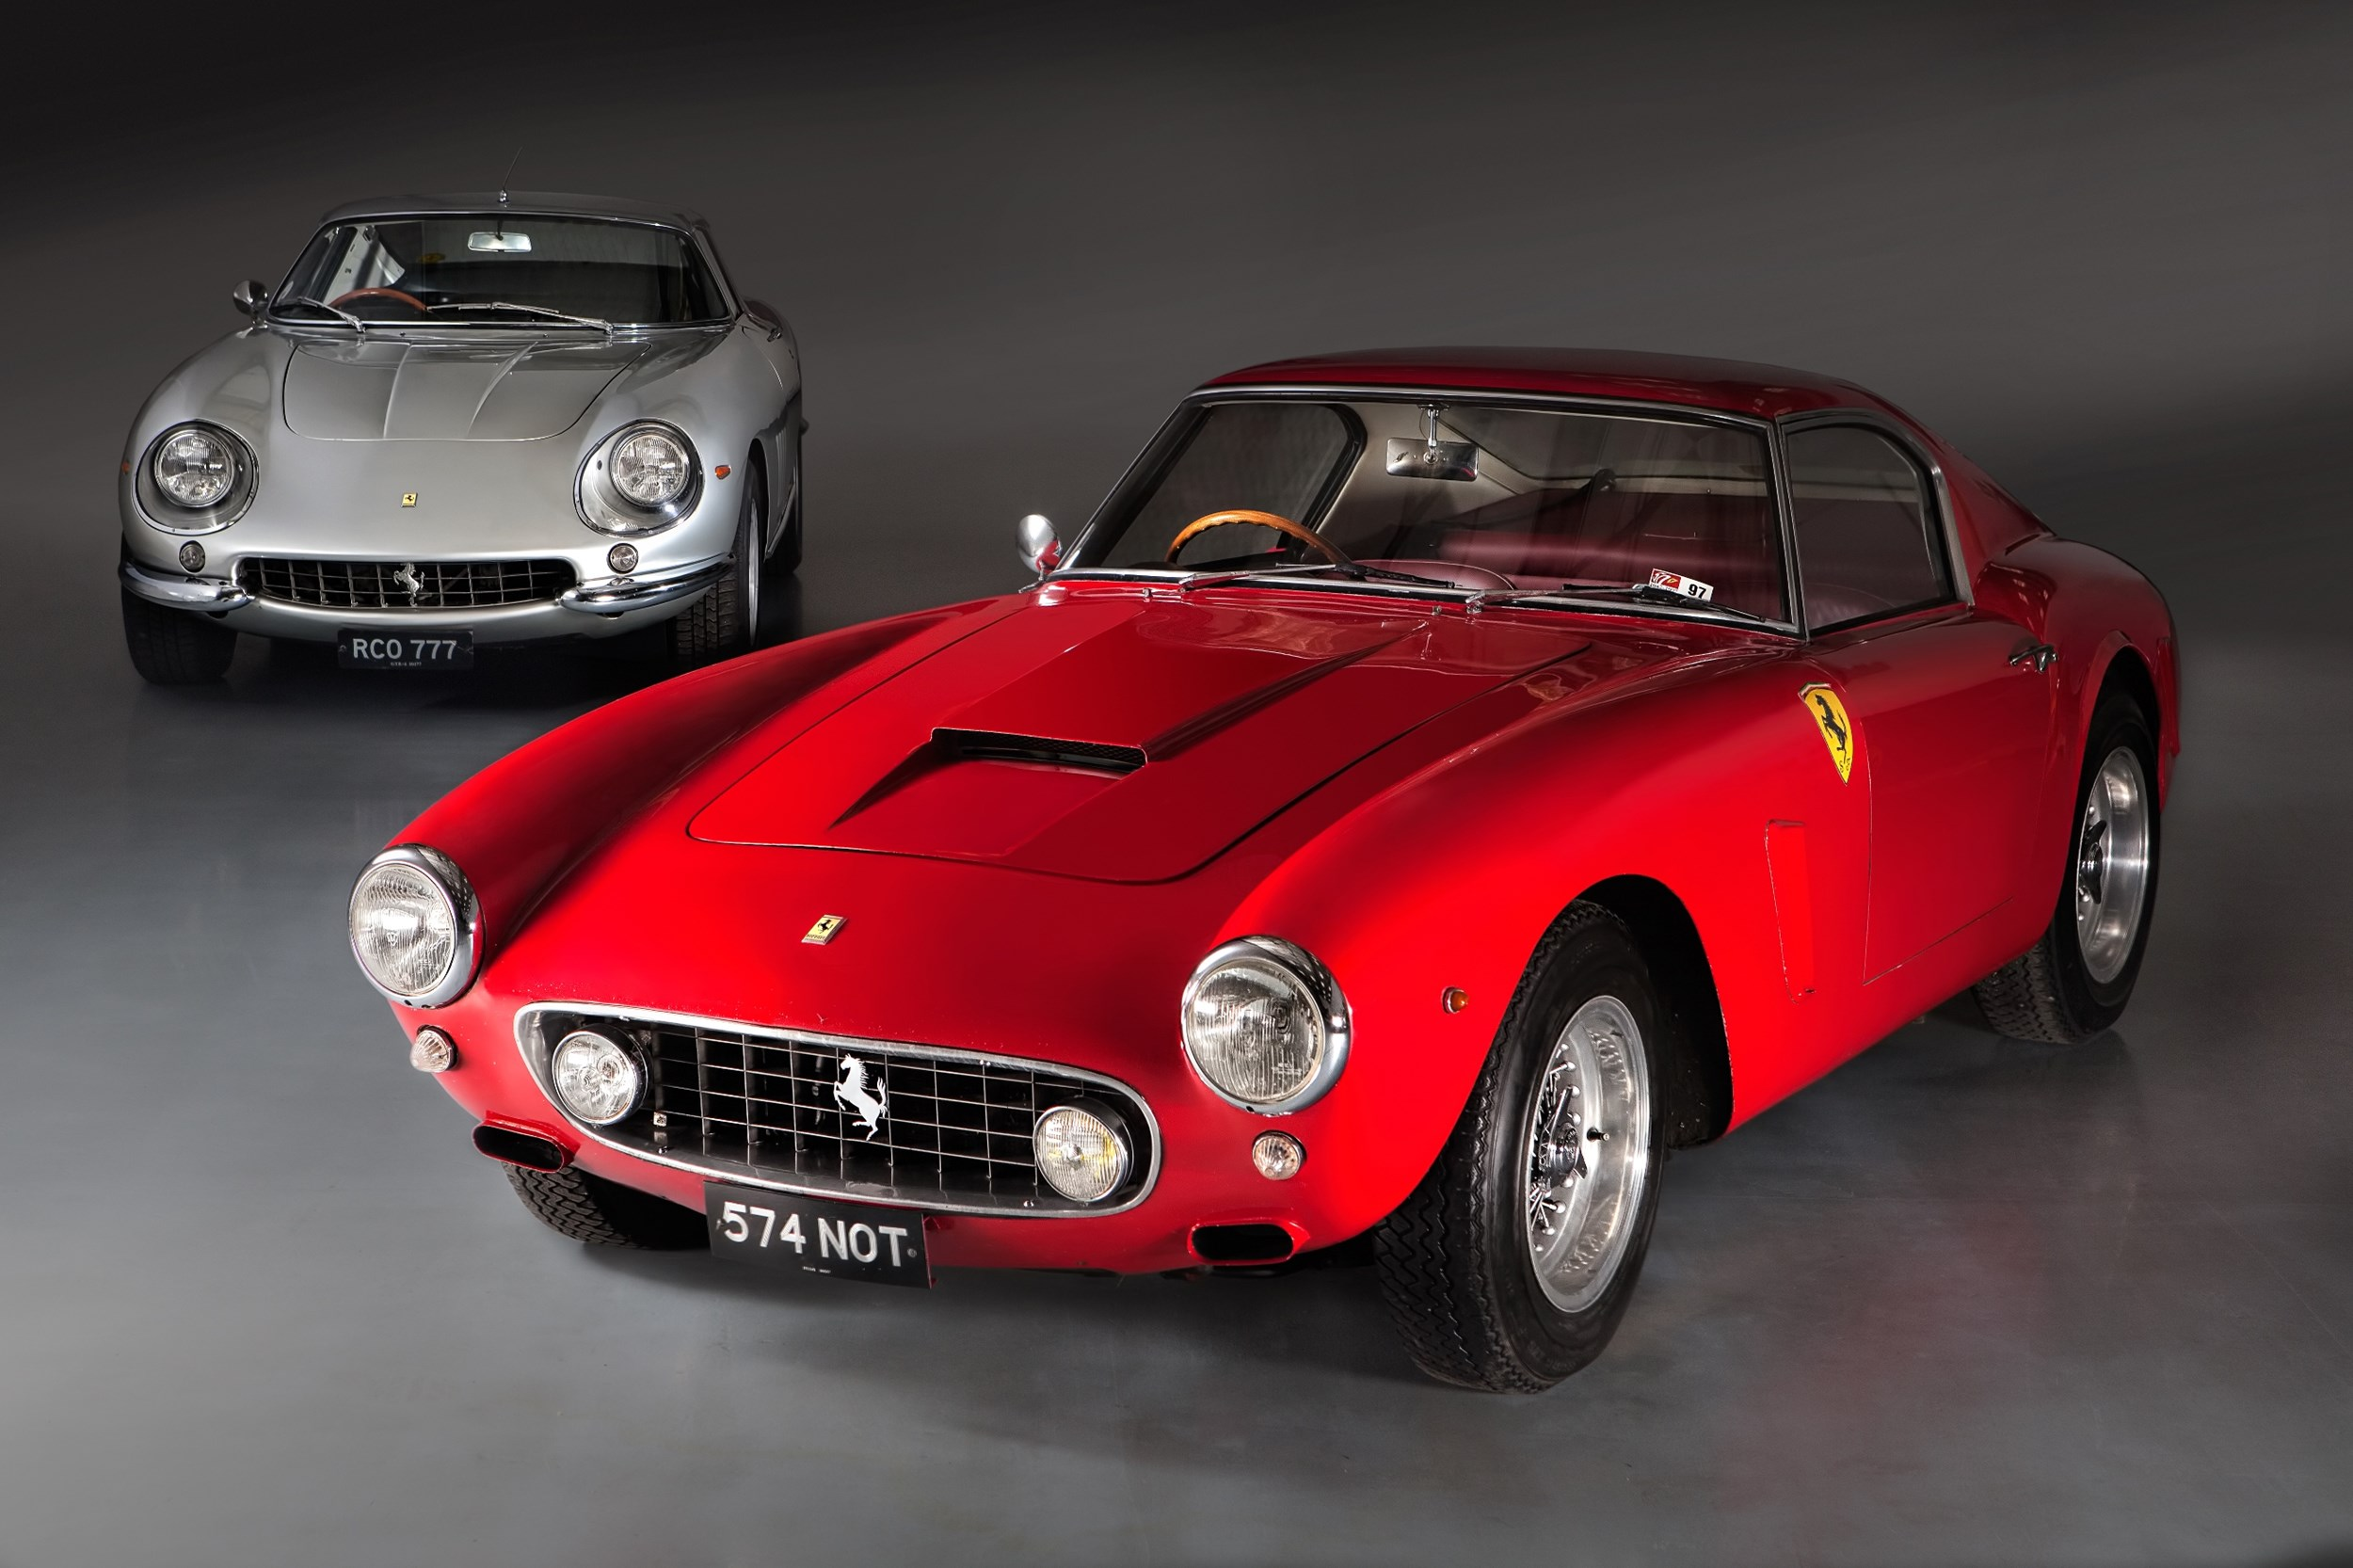 Rare Car That Underpinned Uk S First Ferrari Dealership To Be Sold In Aid Of Rnli Used Cars